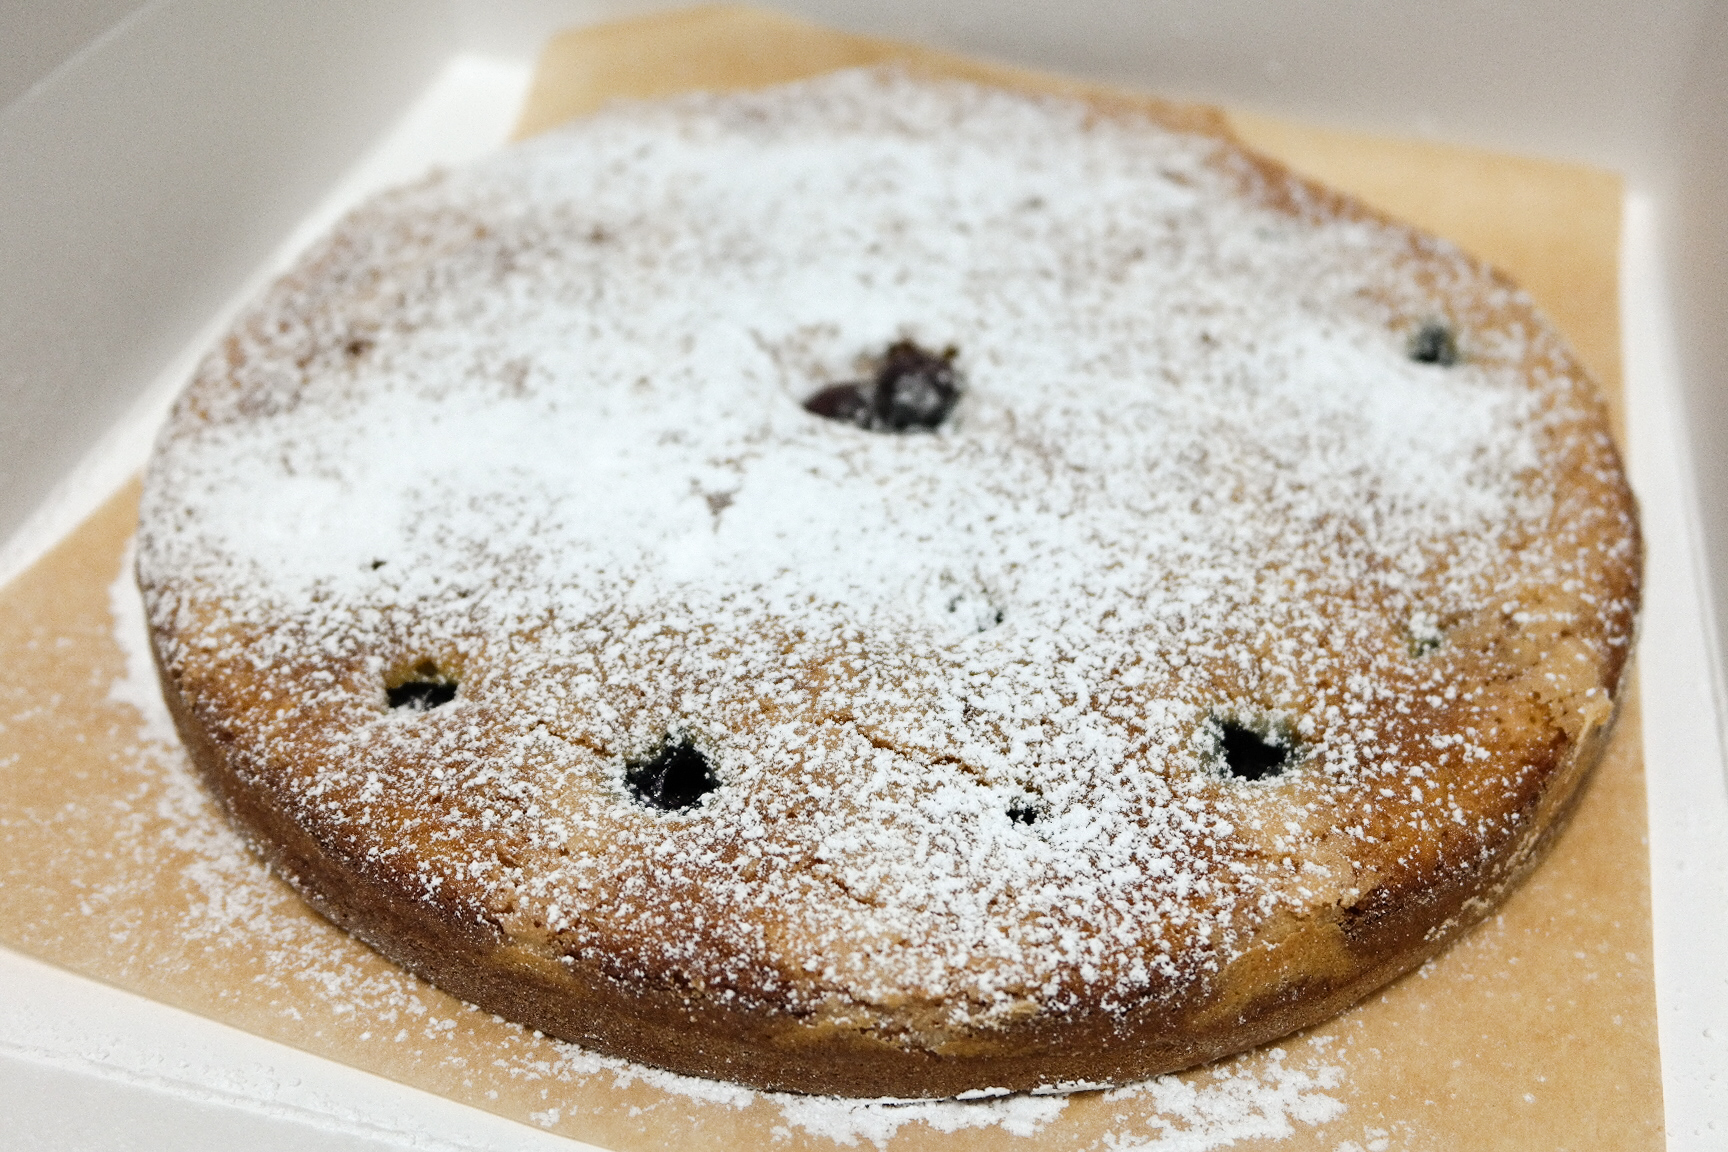 blueberry-buttermilk-cake.JPG